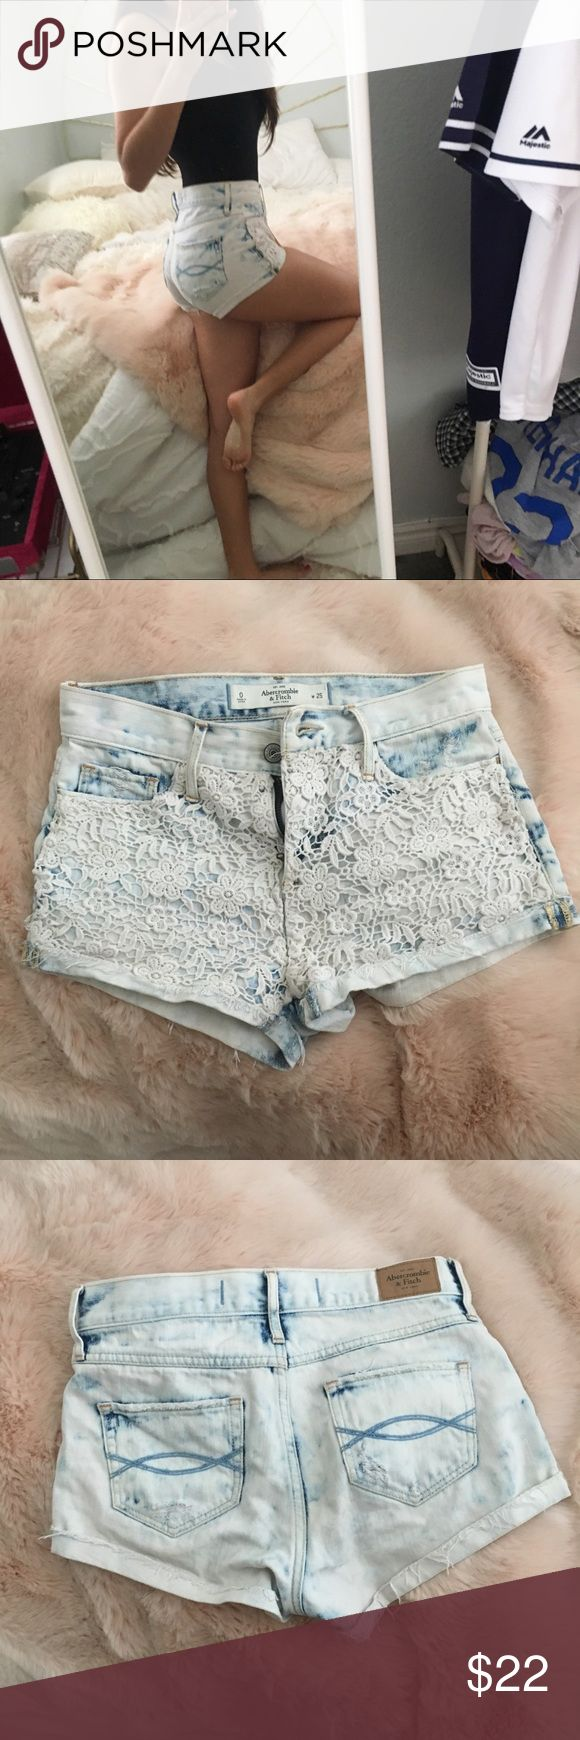 Abercrombie and Fitch lace acid wash shorts Abercrombie and Fitch High Denim Waisted Shorts Light Acid Wash with Lace/Crochet Detail in front Folded distressed hem Size 0 (25 W)  Jean material is not stretchy  In good condition, no flaws Abercrombie & Fitch Shorts Jean Shorts